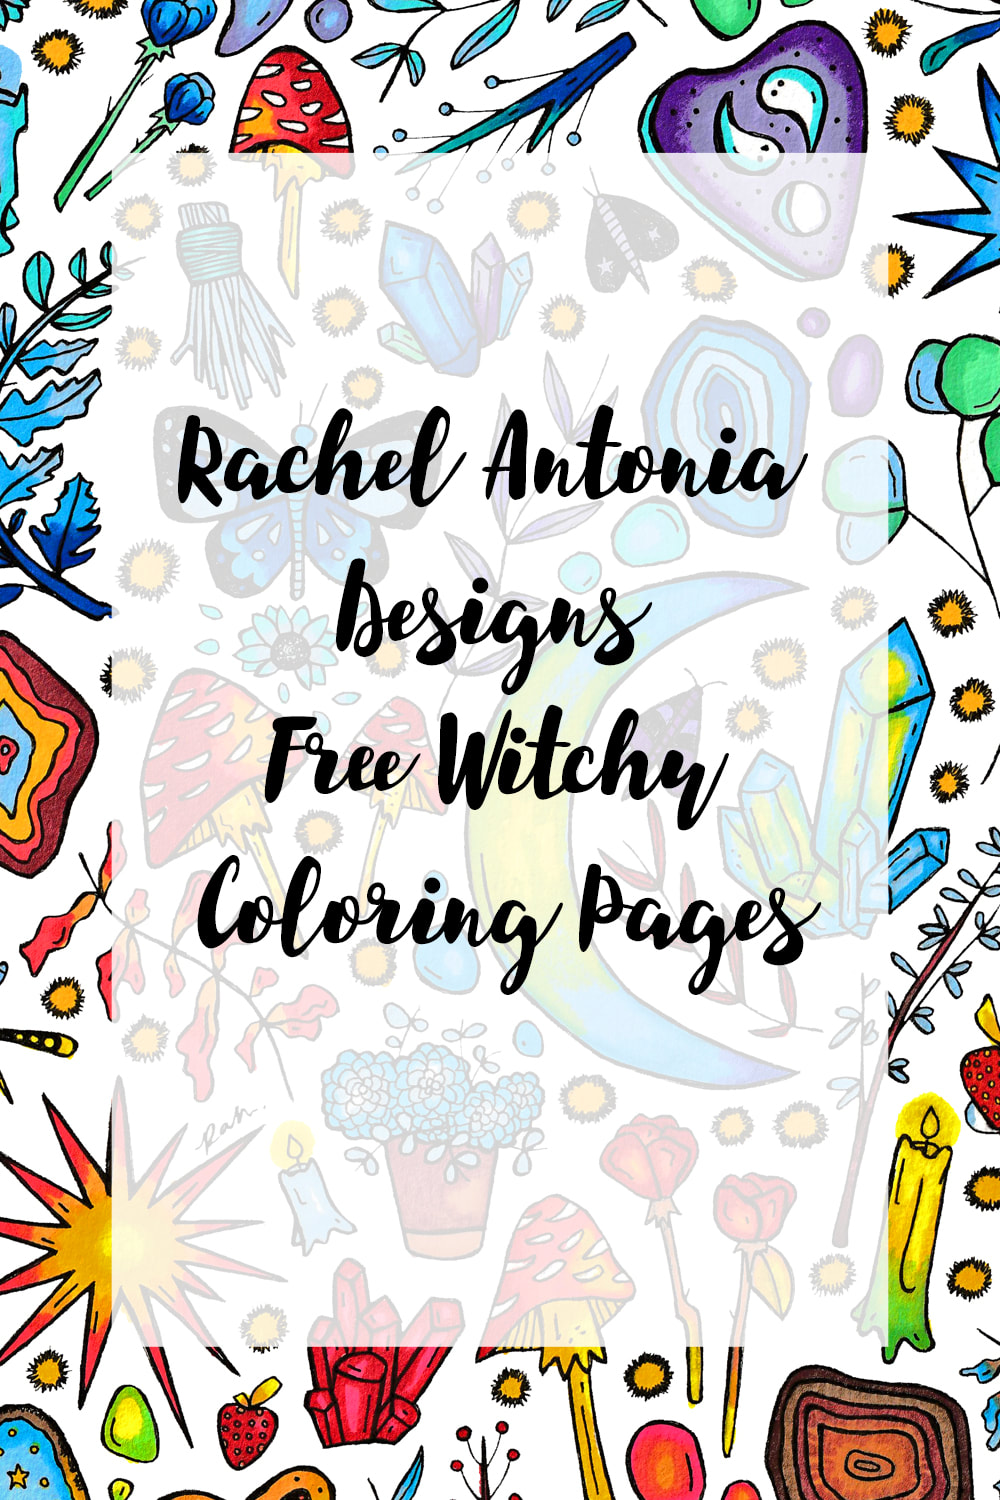 Rachel Antonia Designs Free Witchy Coloring PagesPicture